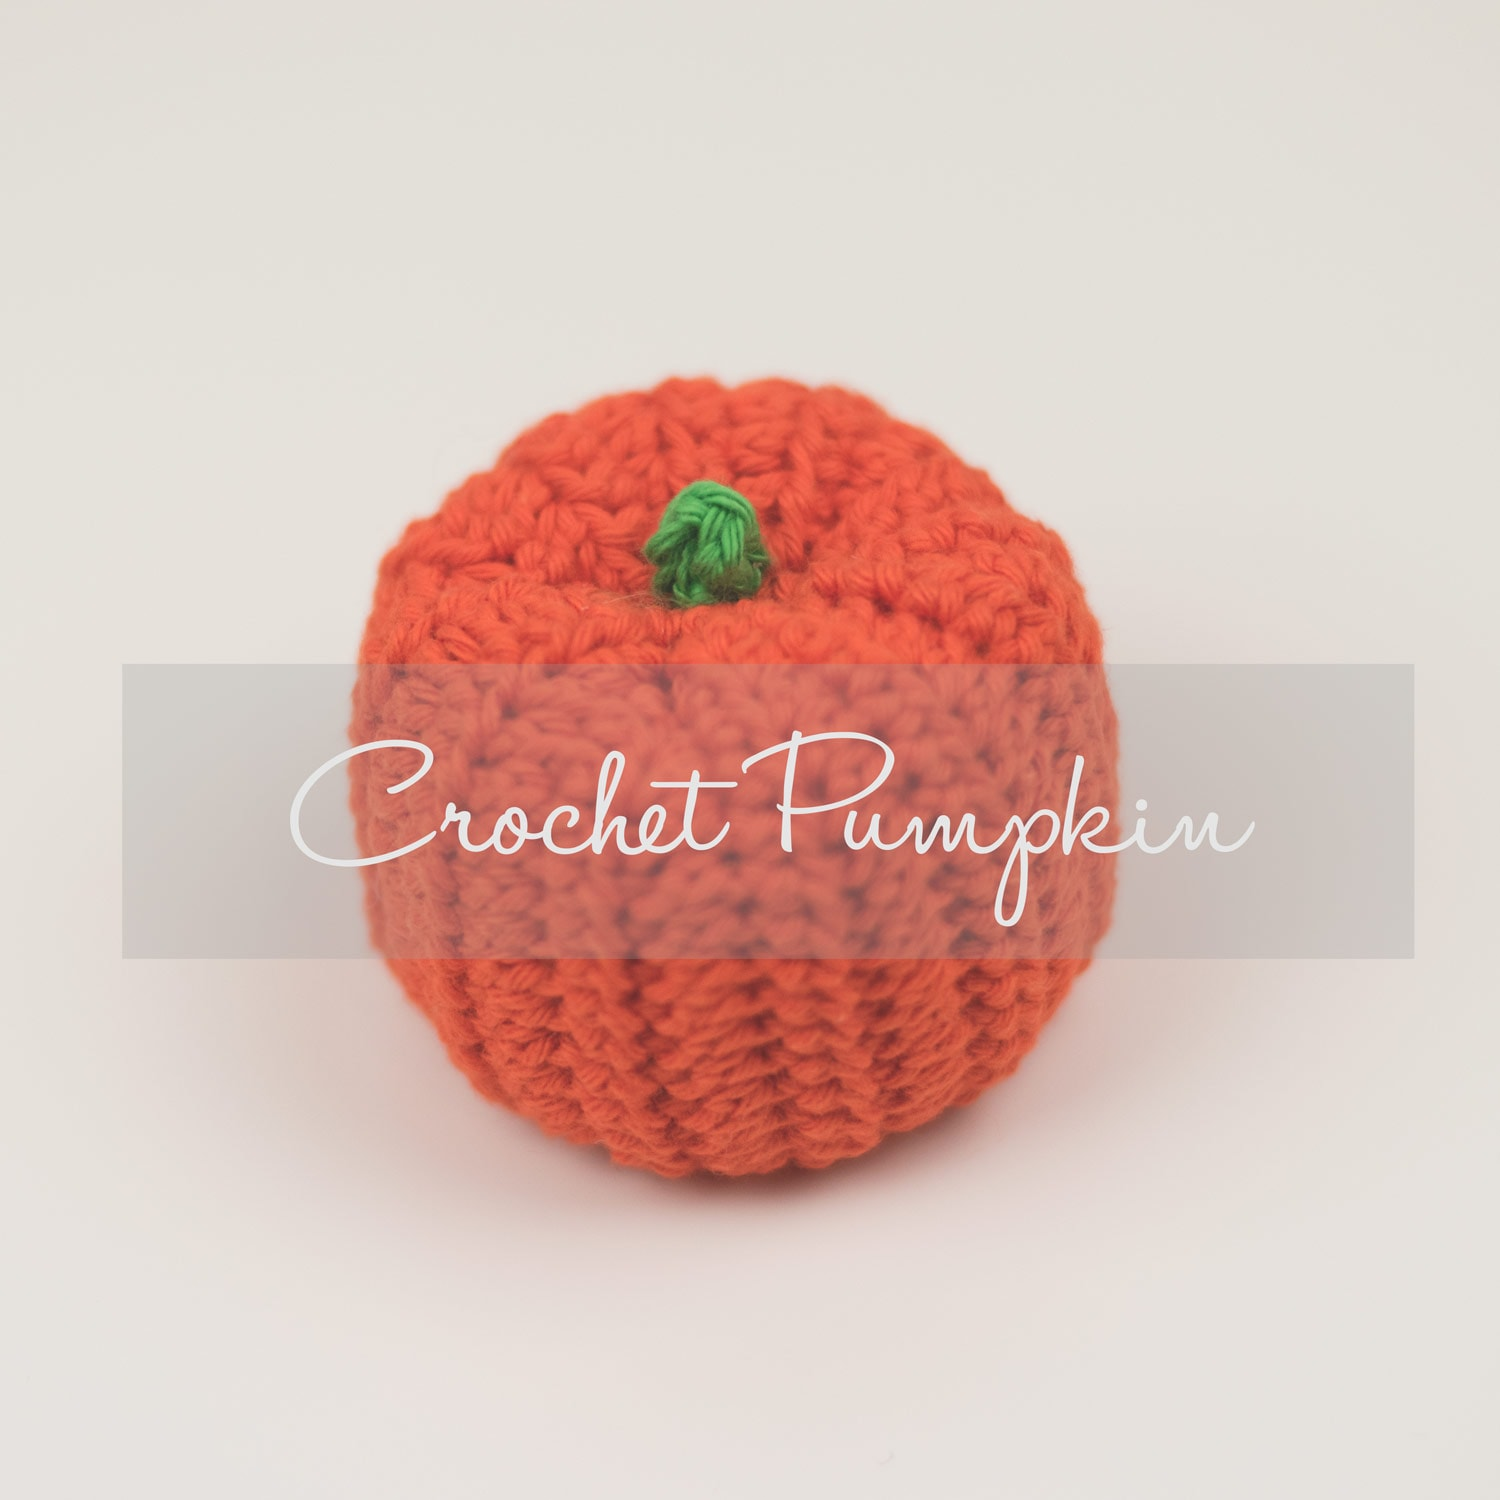 Crochet Pumpkin Pattern by Croby Patterns